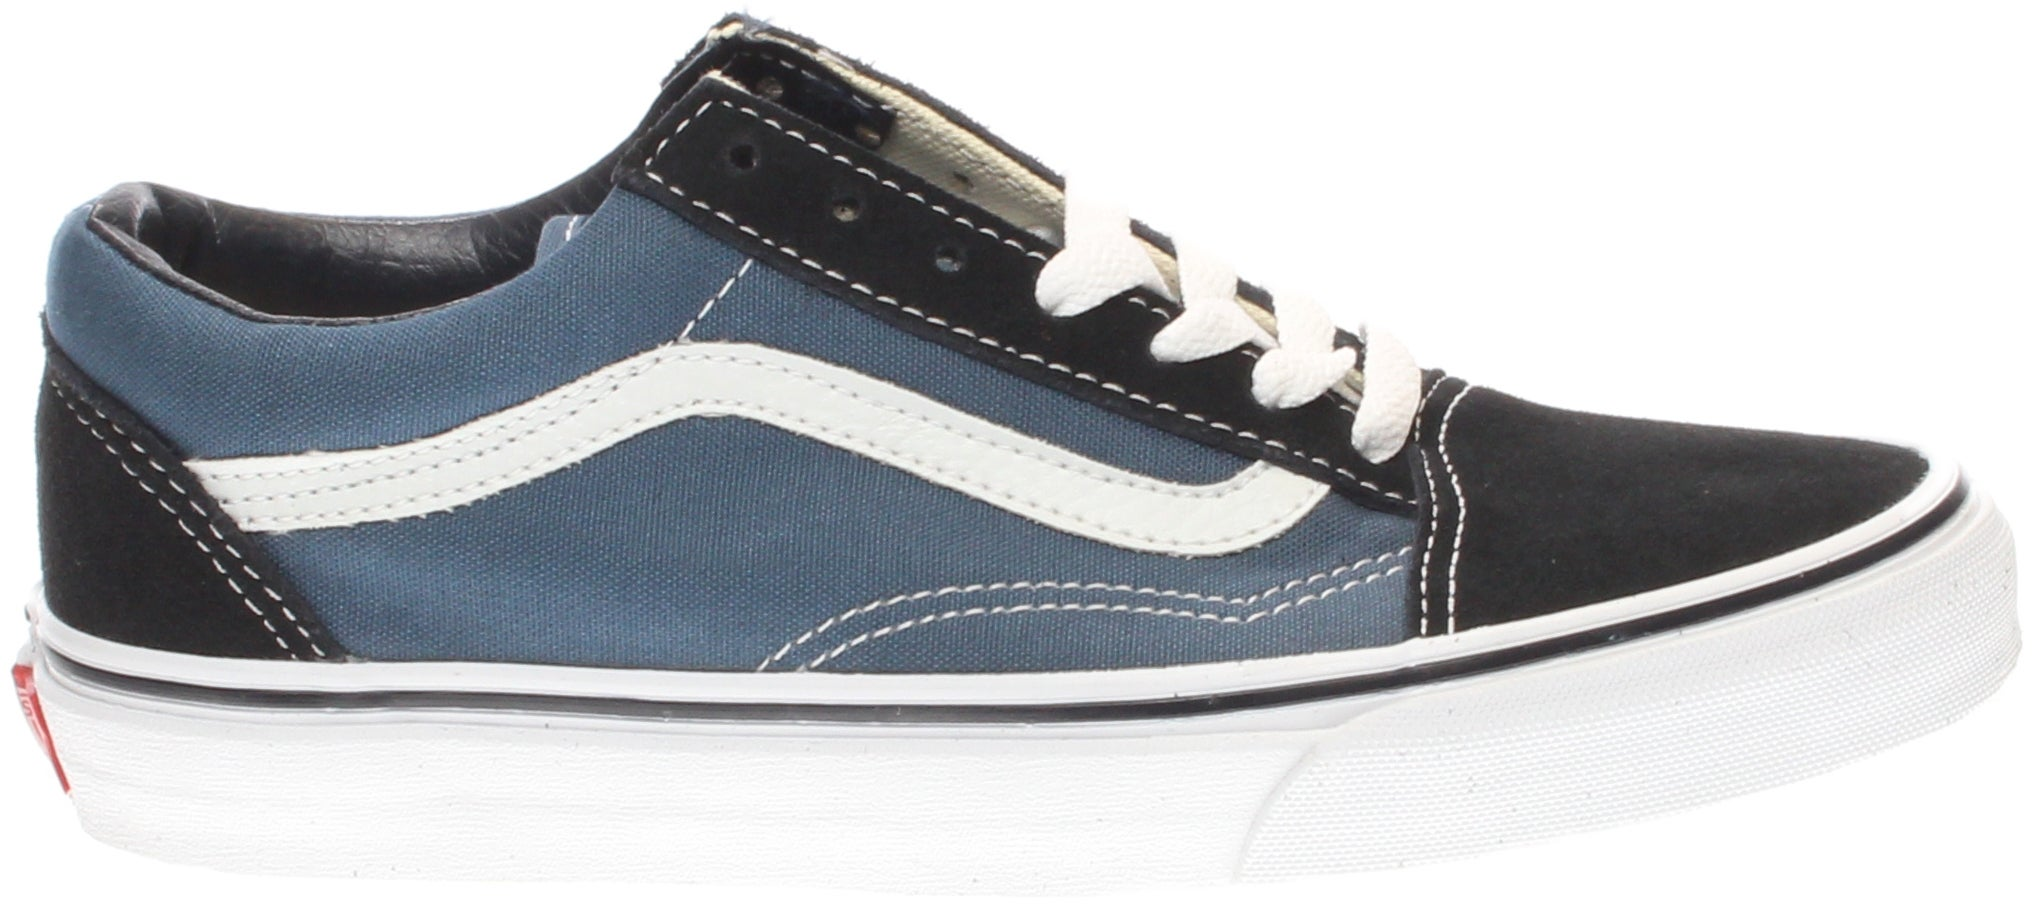 Vans Old Skool - Navy - Unisex